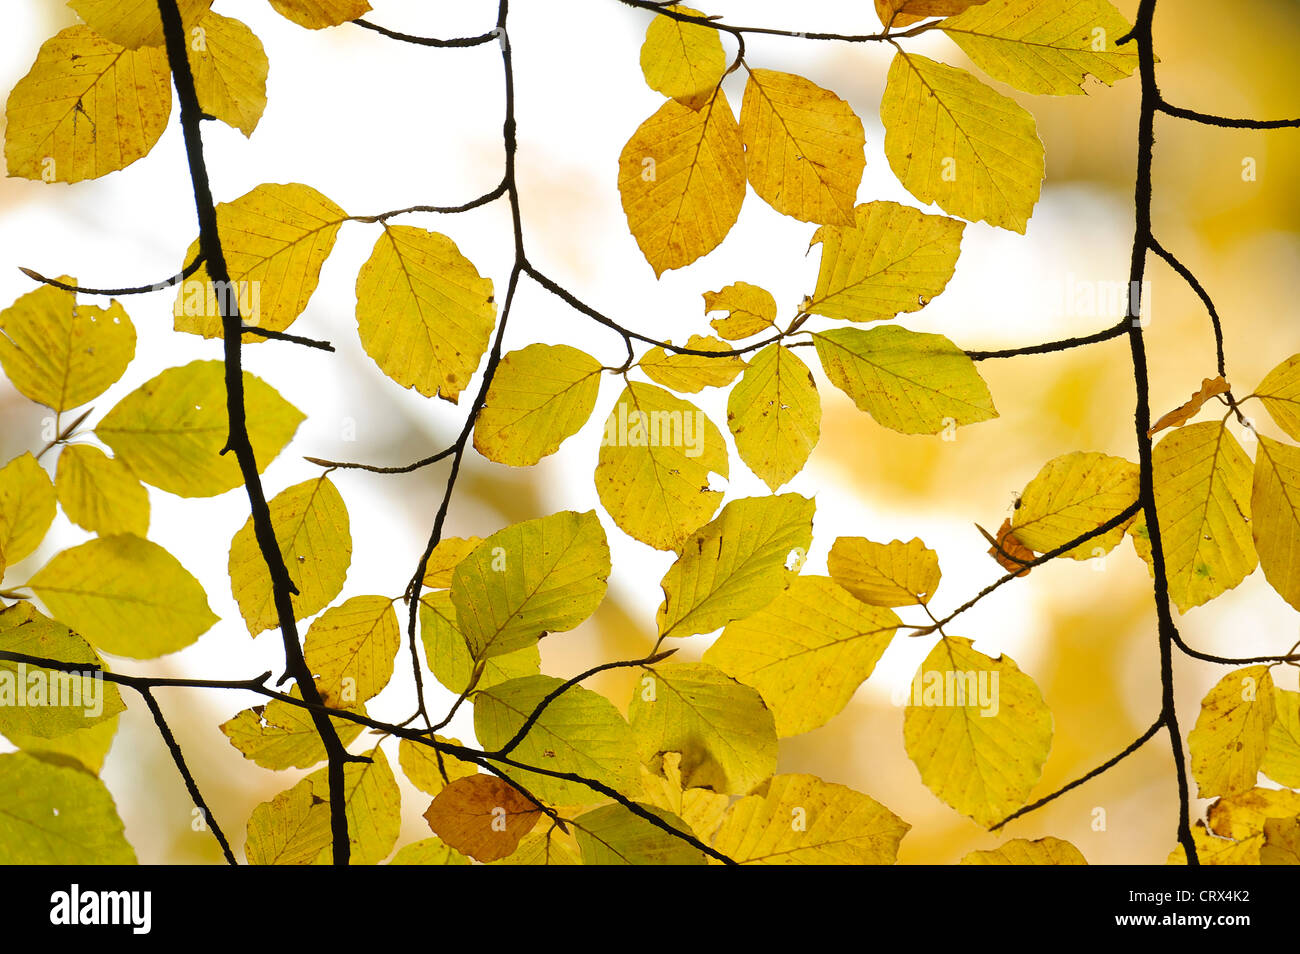 Autumn beech leaves (Fagus sylvatica) at Ashridge Forest In Hertfordshire, England. October. - Stock Image